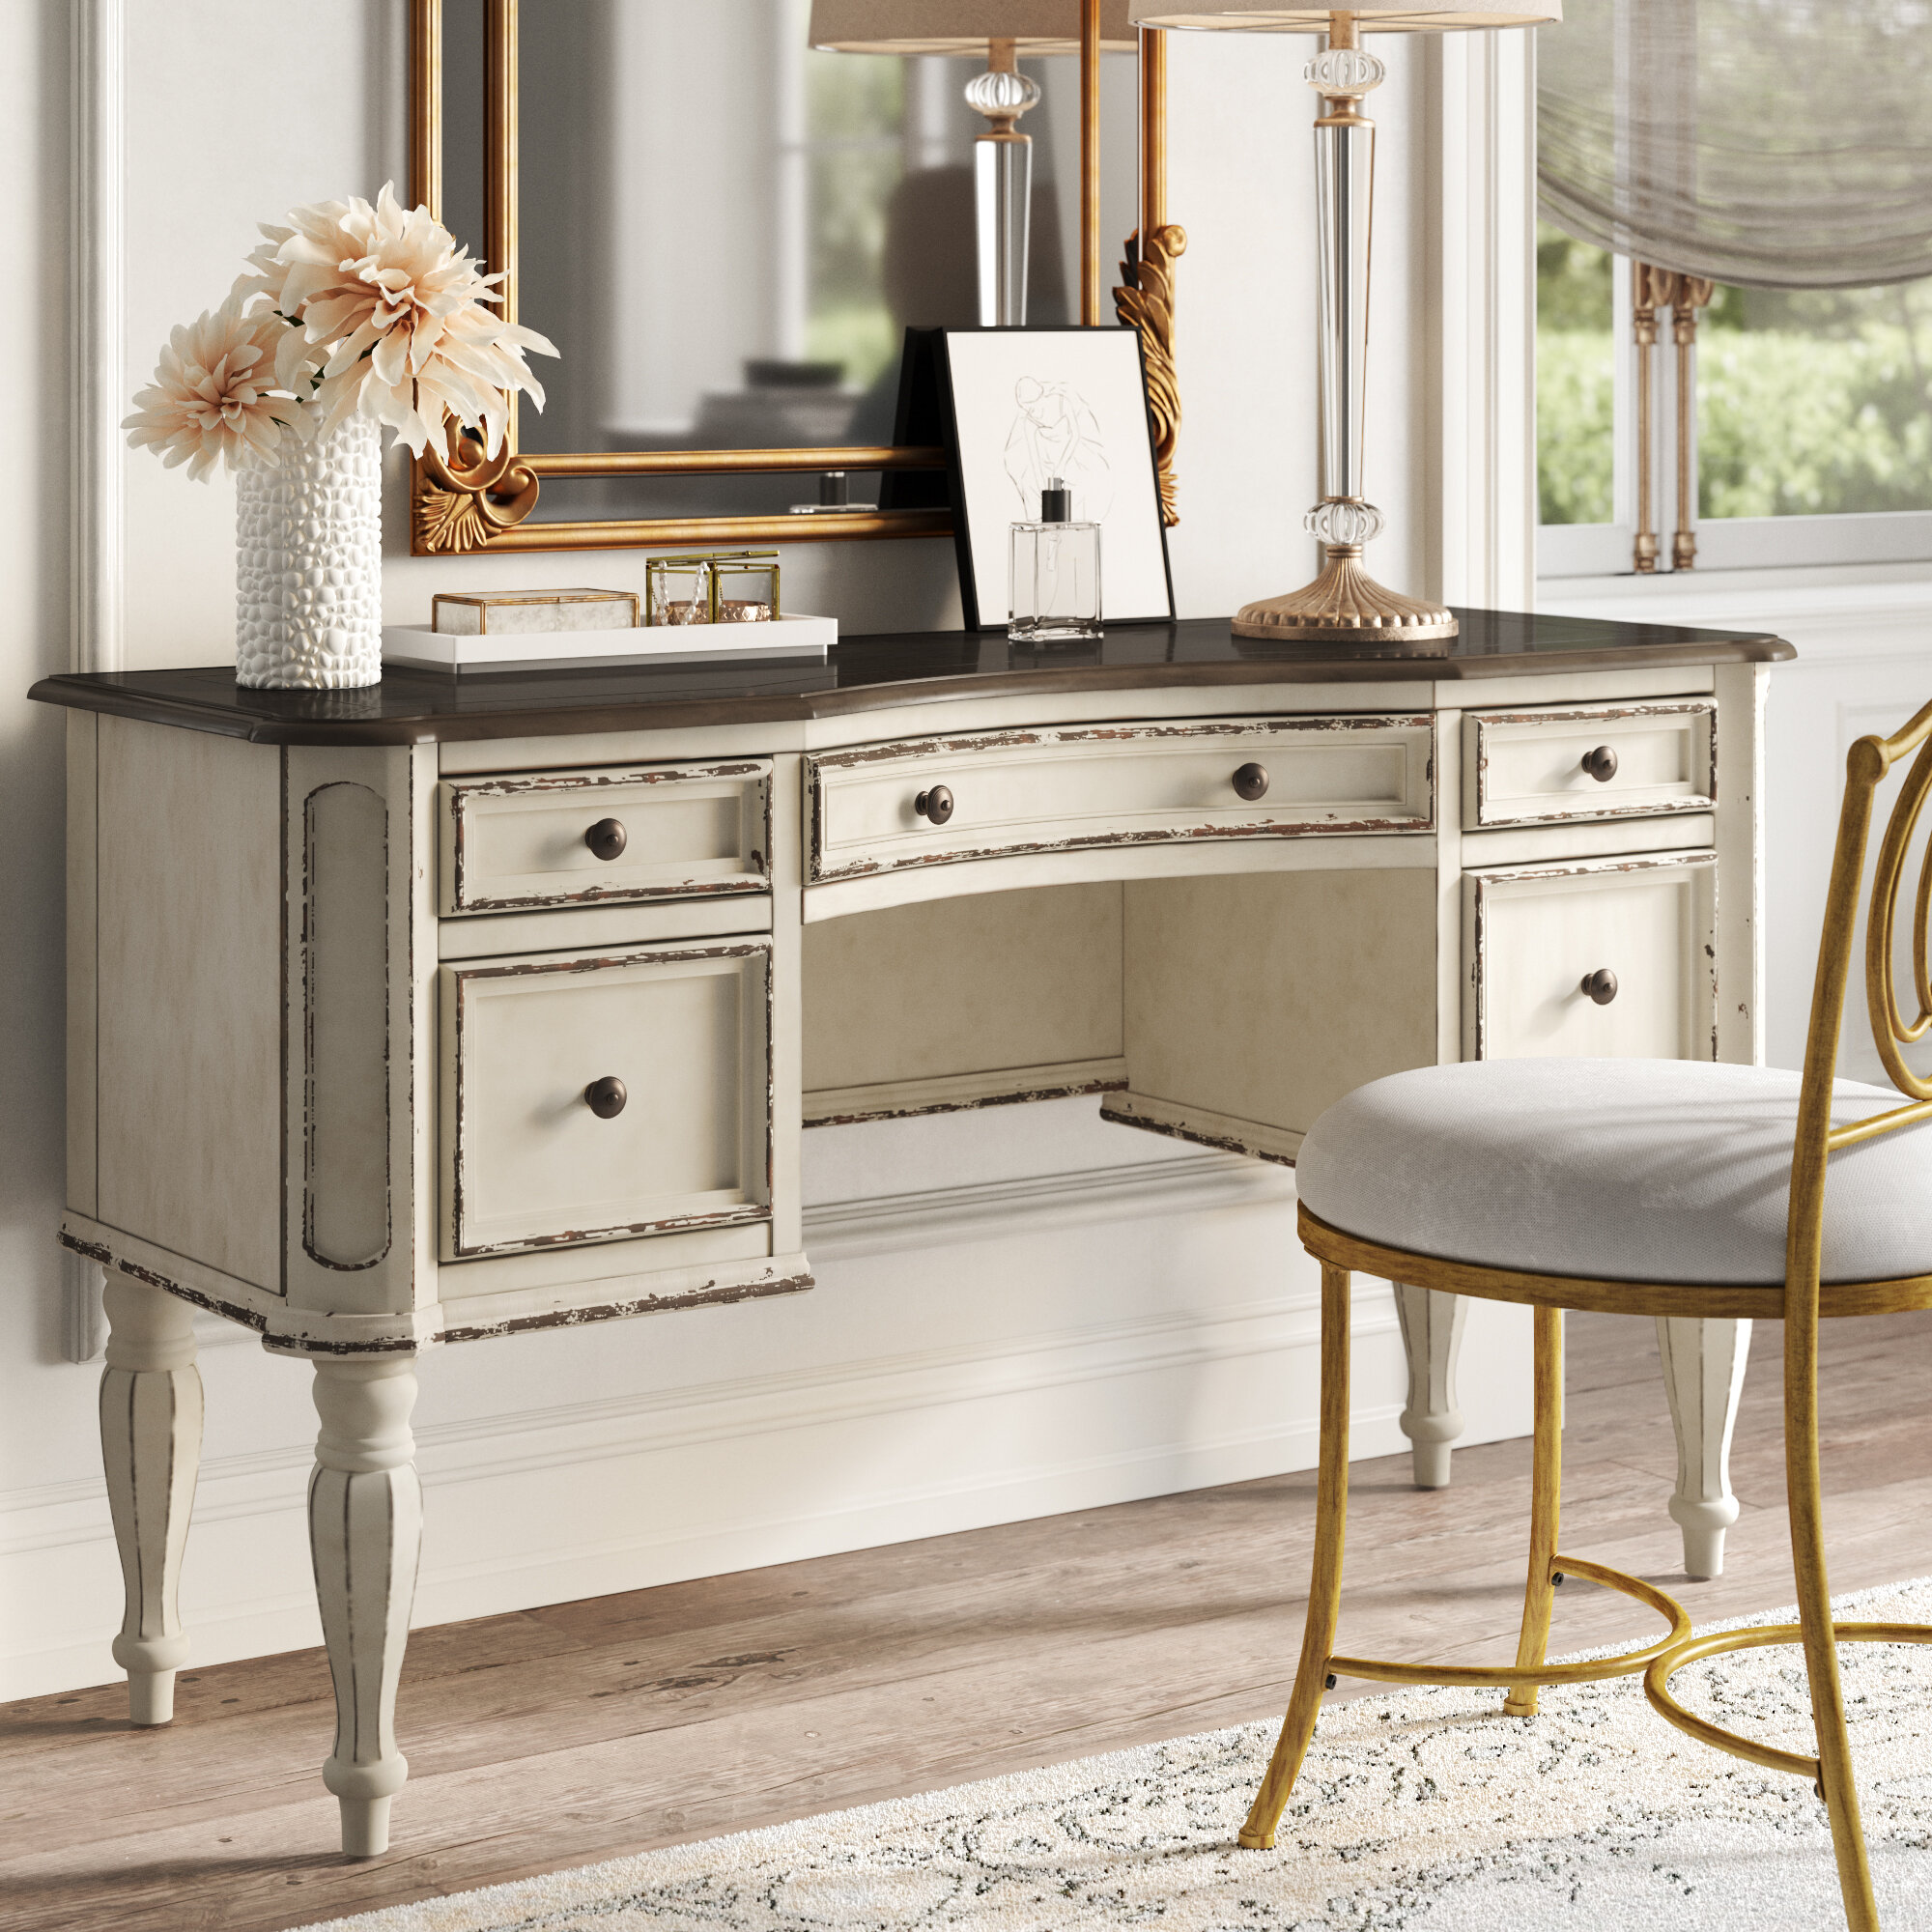 Kelly Clarkson Home Treport Vanity Reviews Wayfair